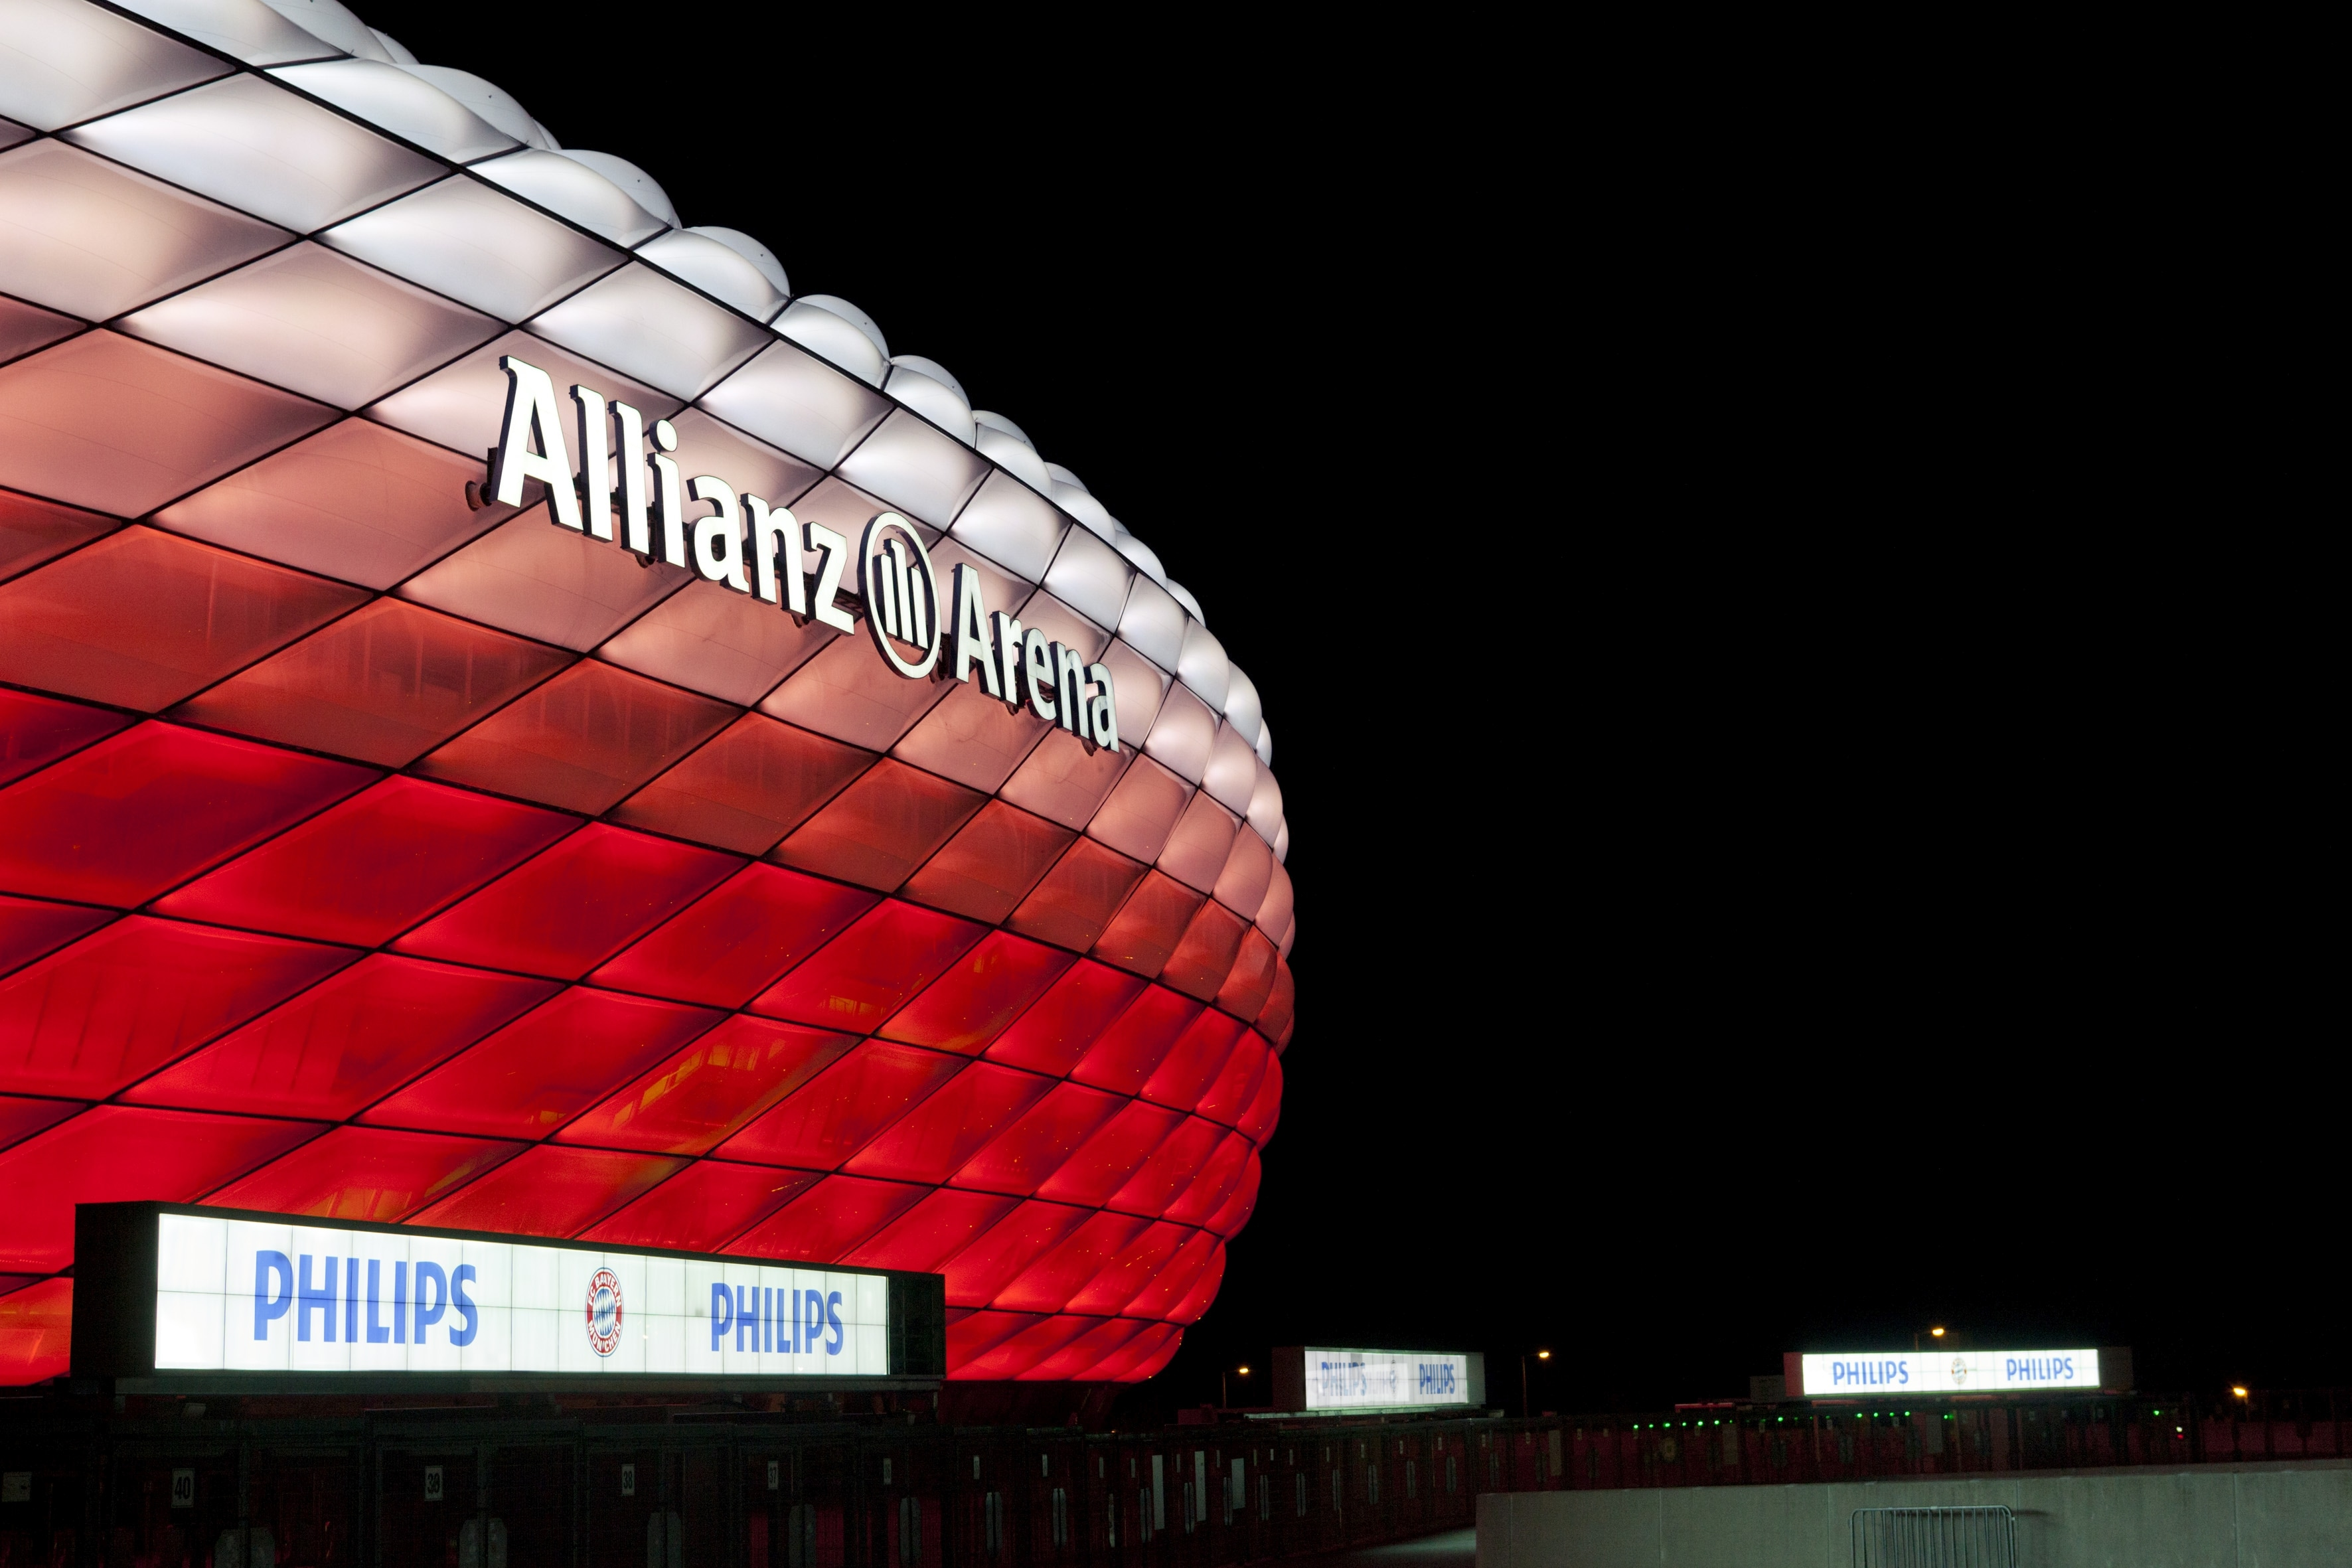 Connected Philips Led Lighting For The Allianz Arena Fc